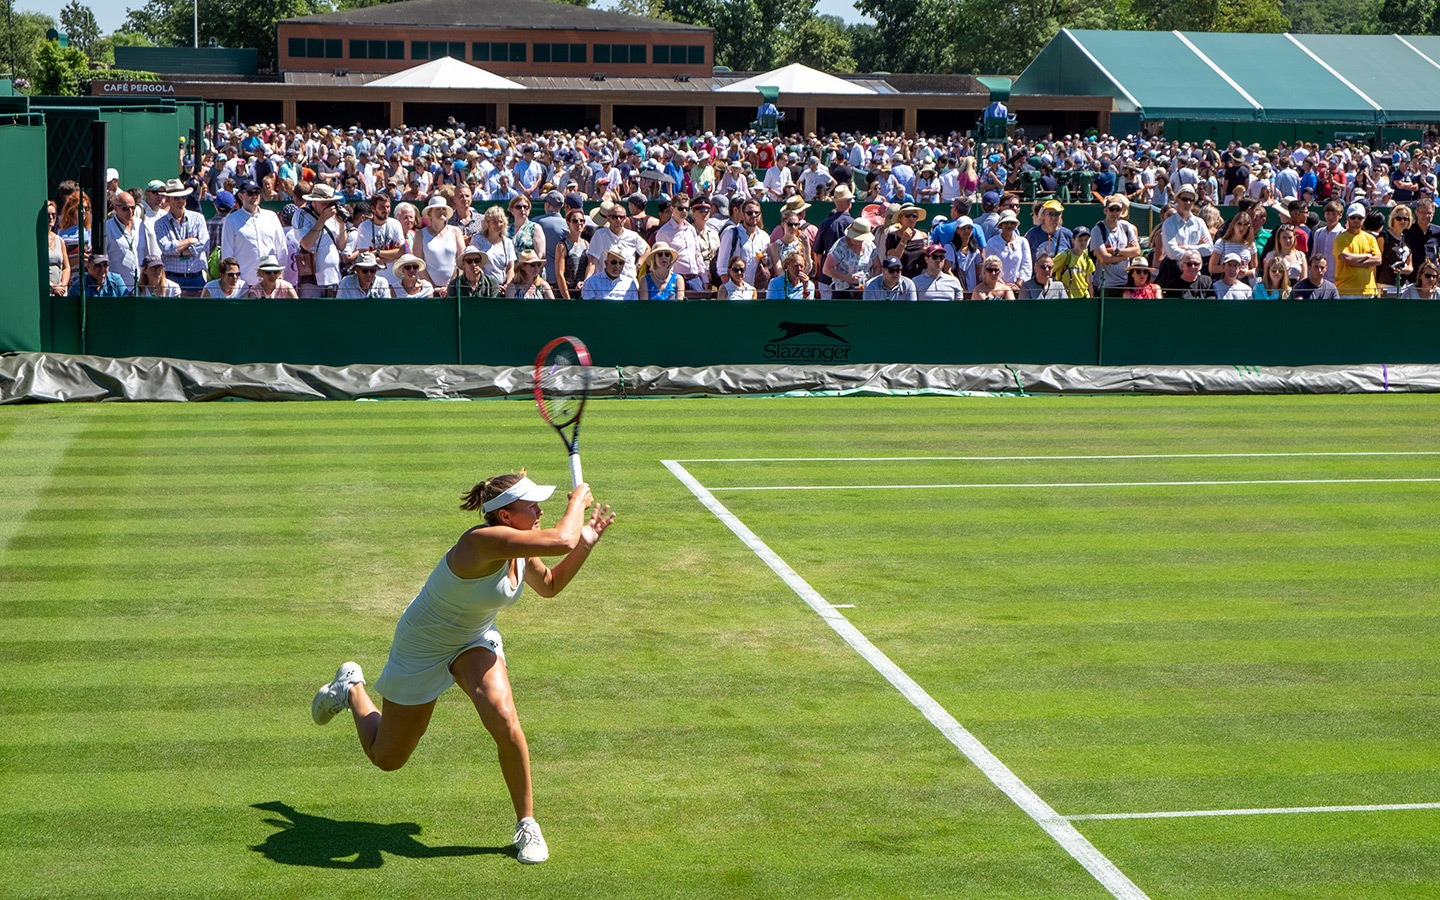 Female tennis players on court